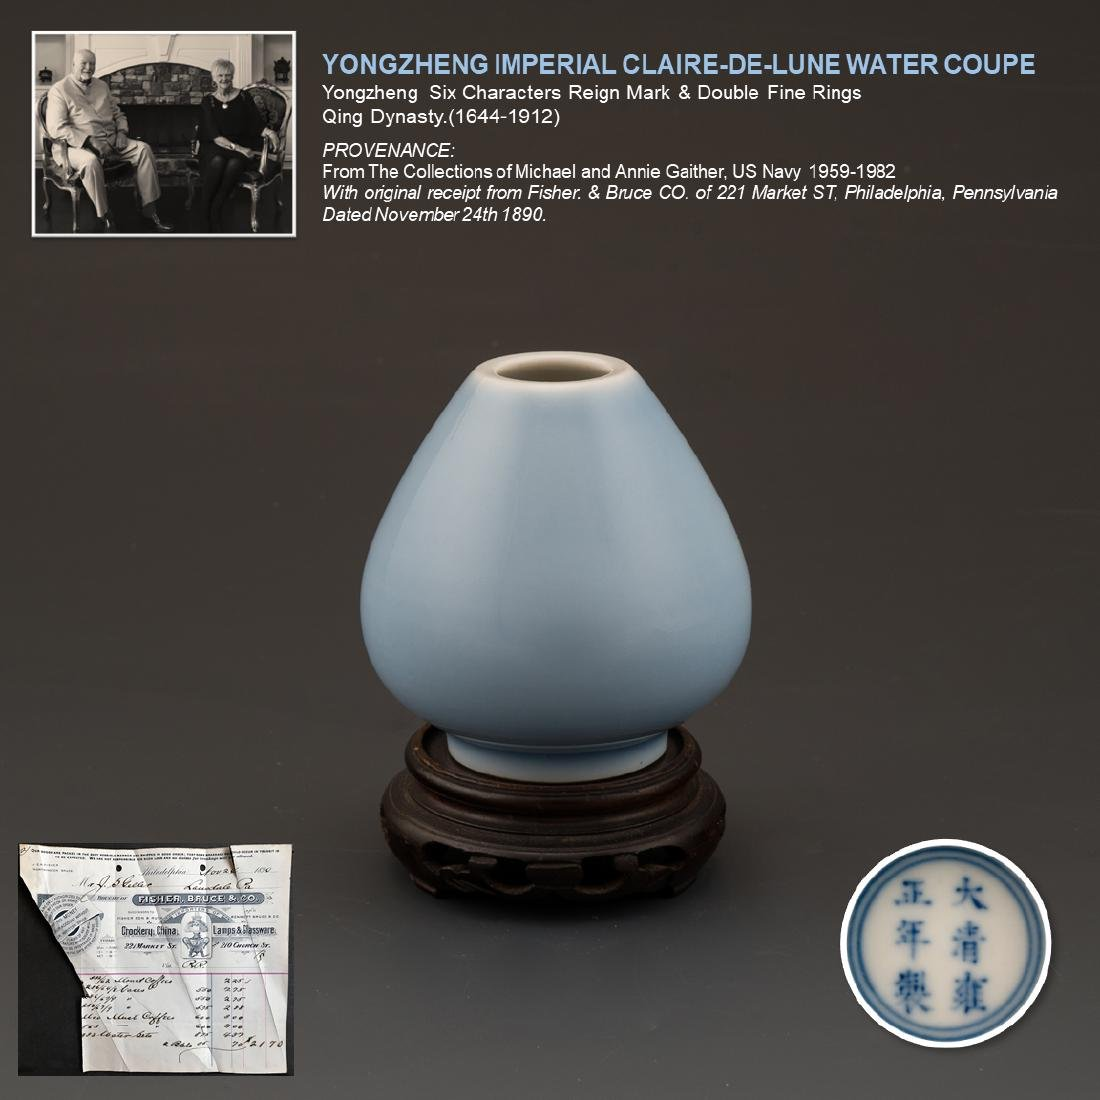 YONGZHENG IMPERIAL CLAIRE-DE-LUNE WATER COUPE